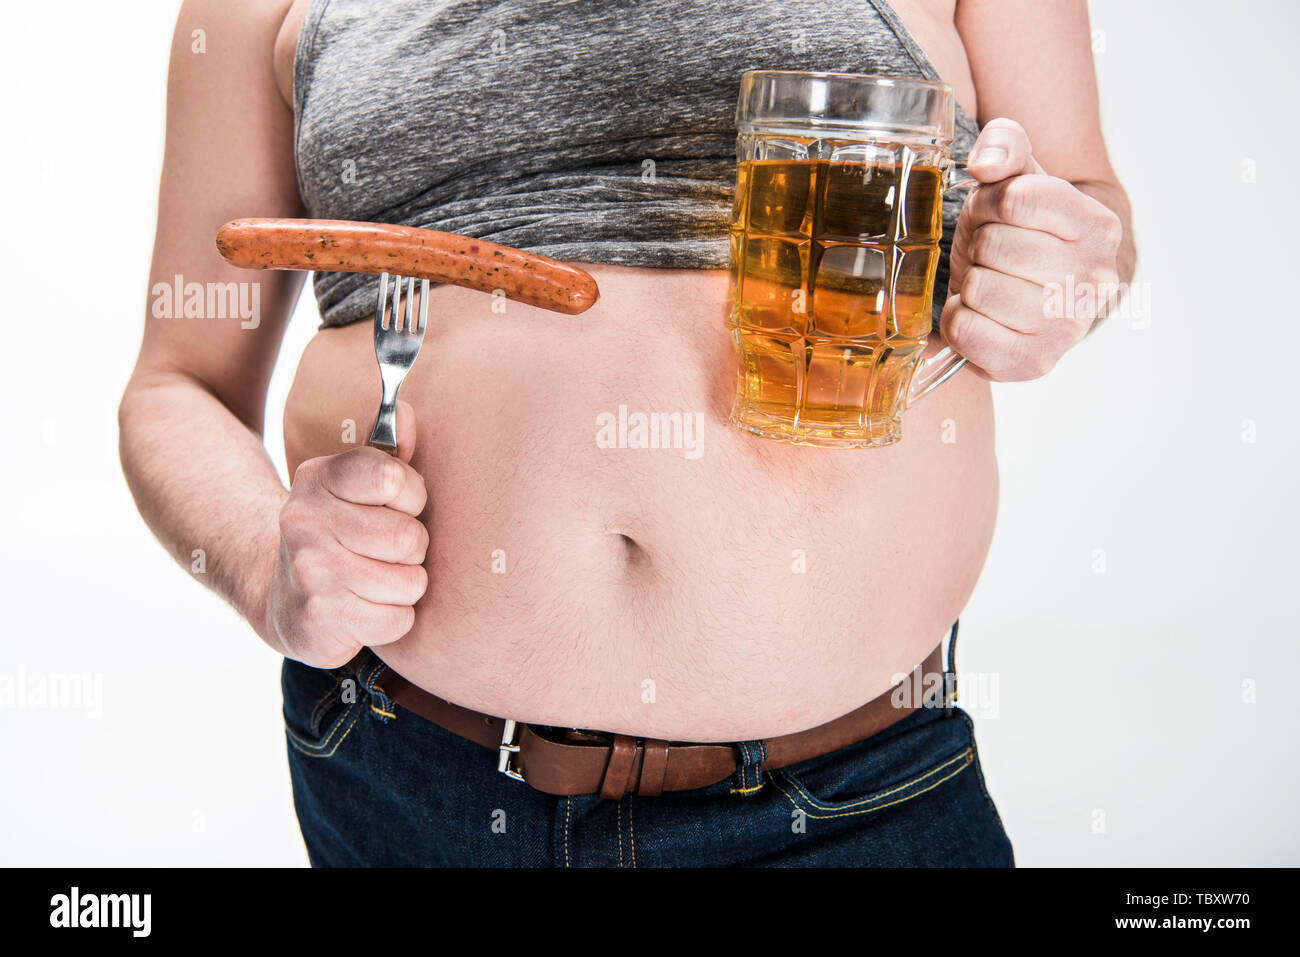 cropped view of overweight man showing belly and holding glass of beer with grilled sausage isolated on white Stock Photo